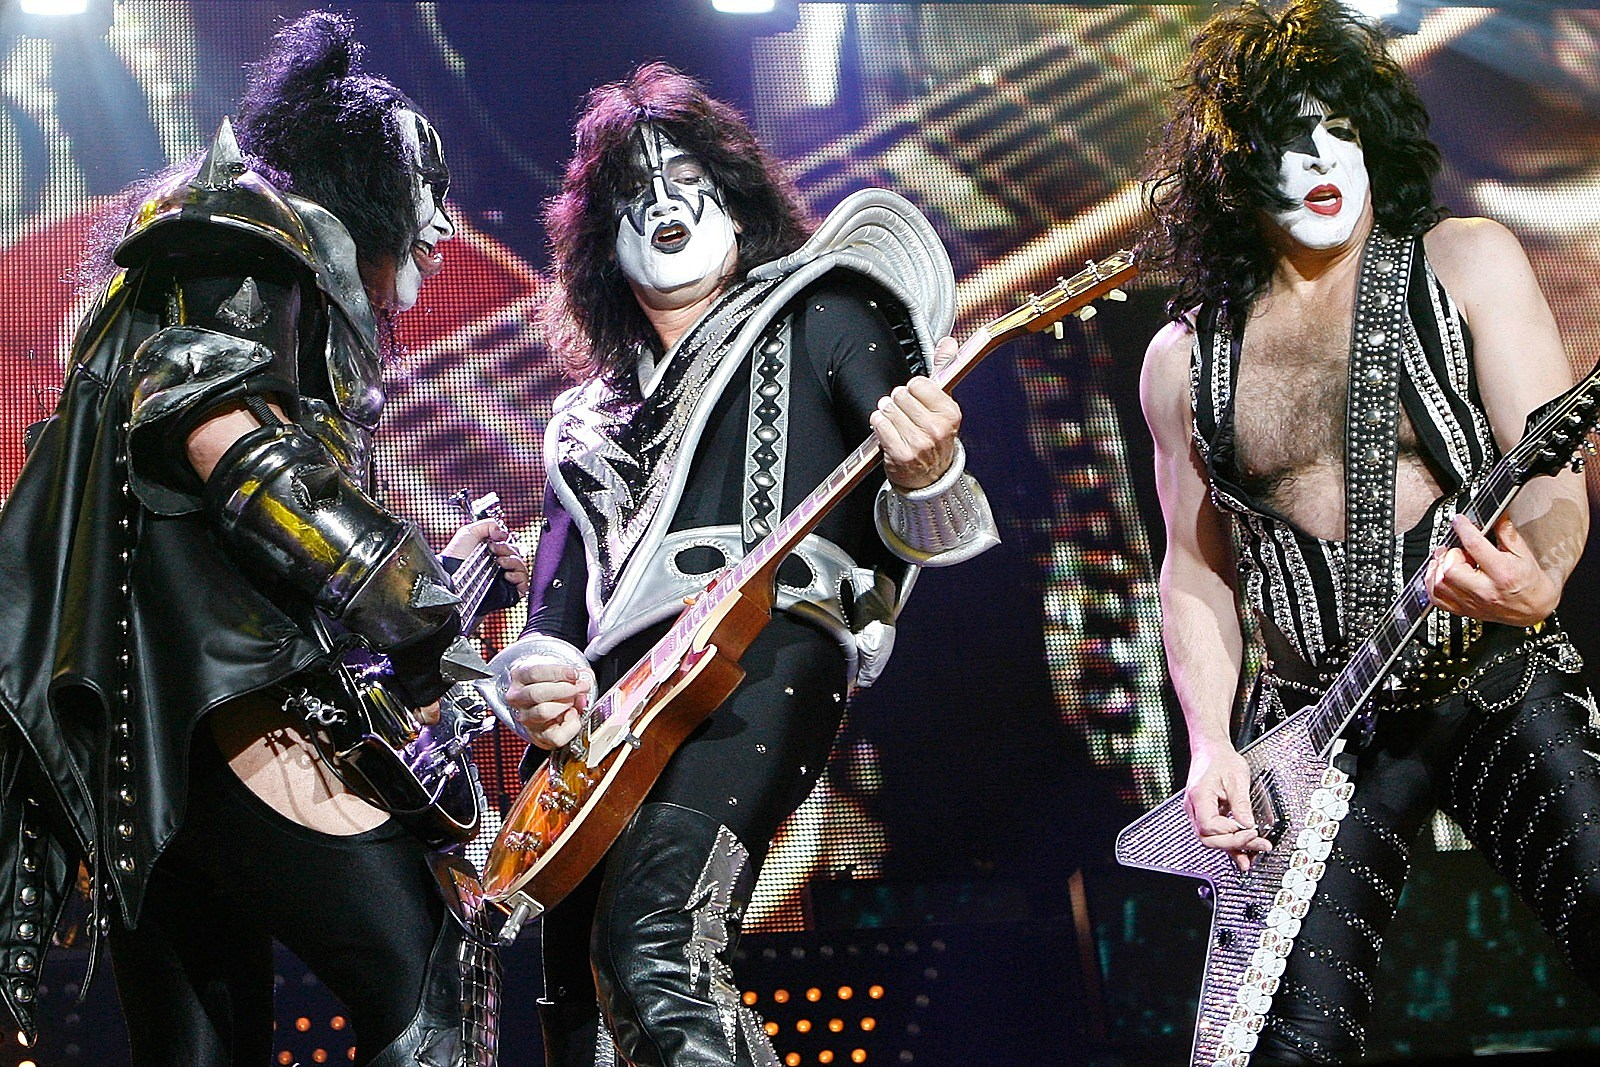 Paul Stanley Explains Kiss' 'The End of the Road' Trademark